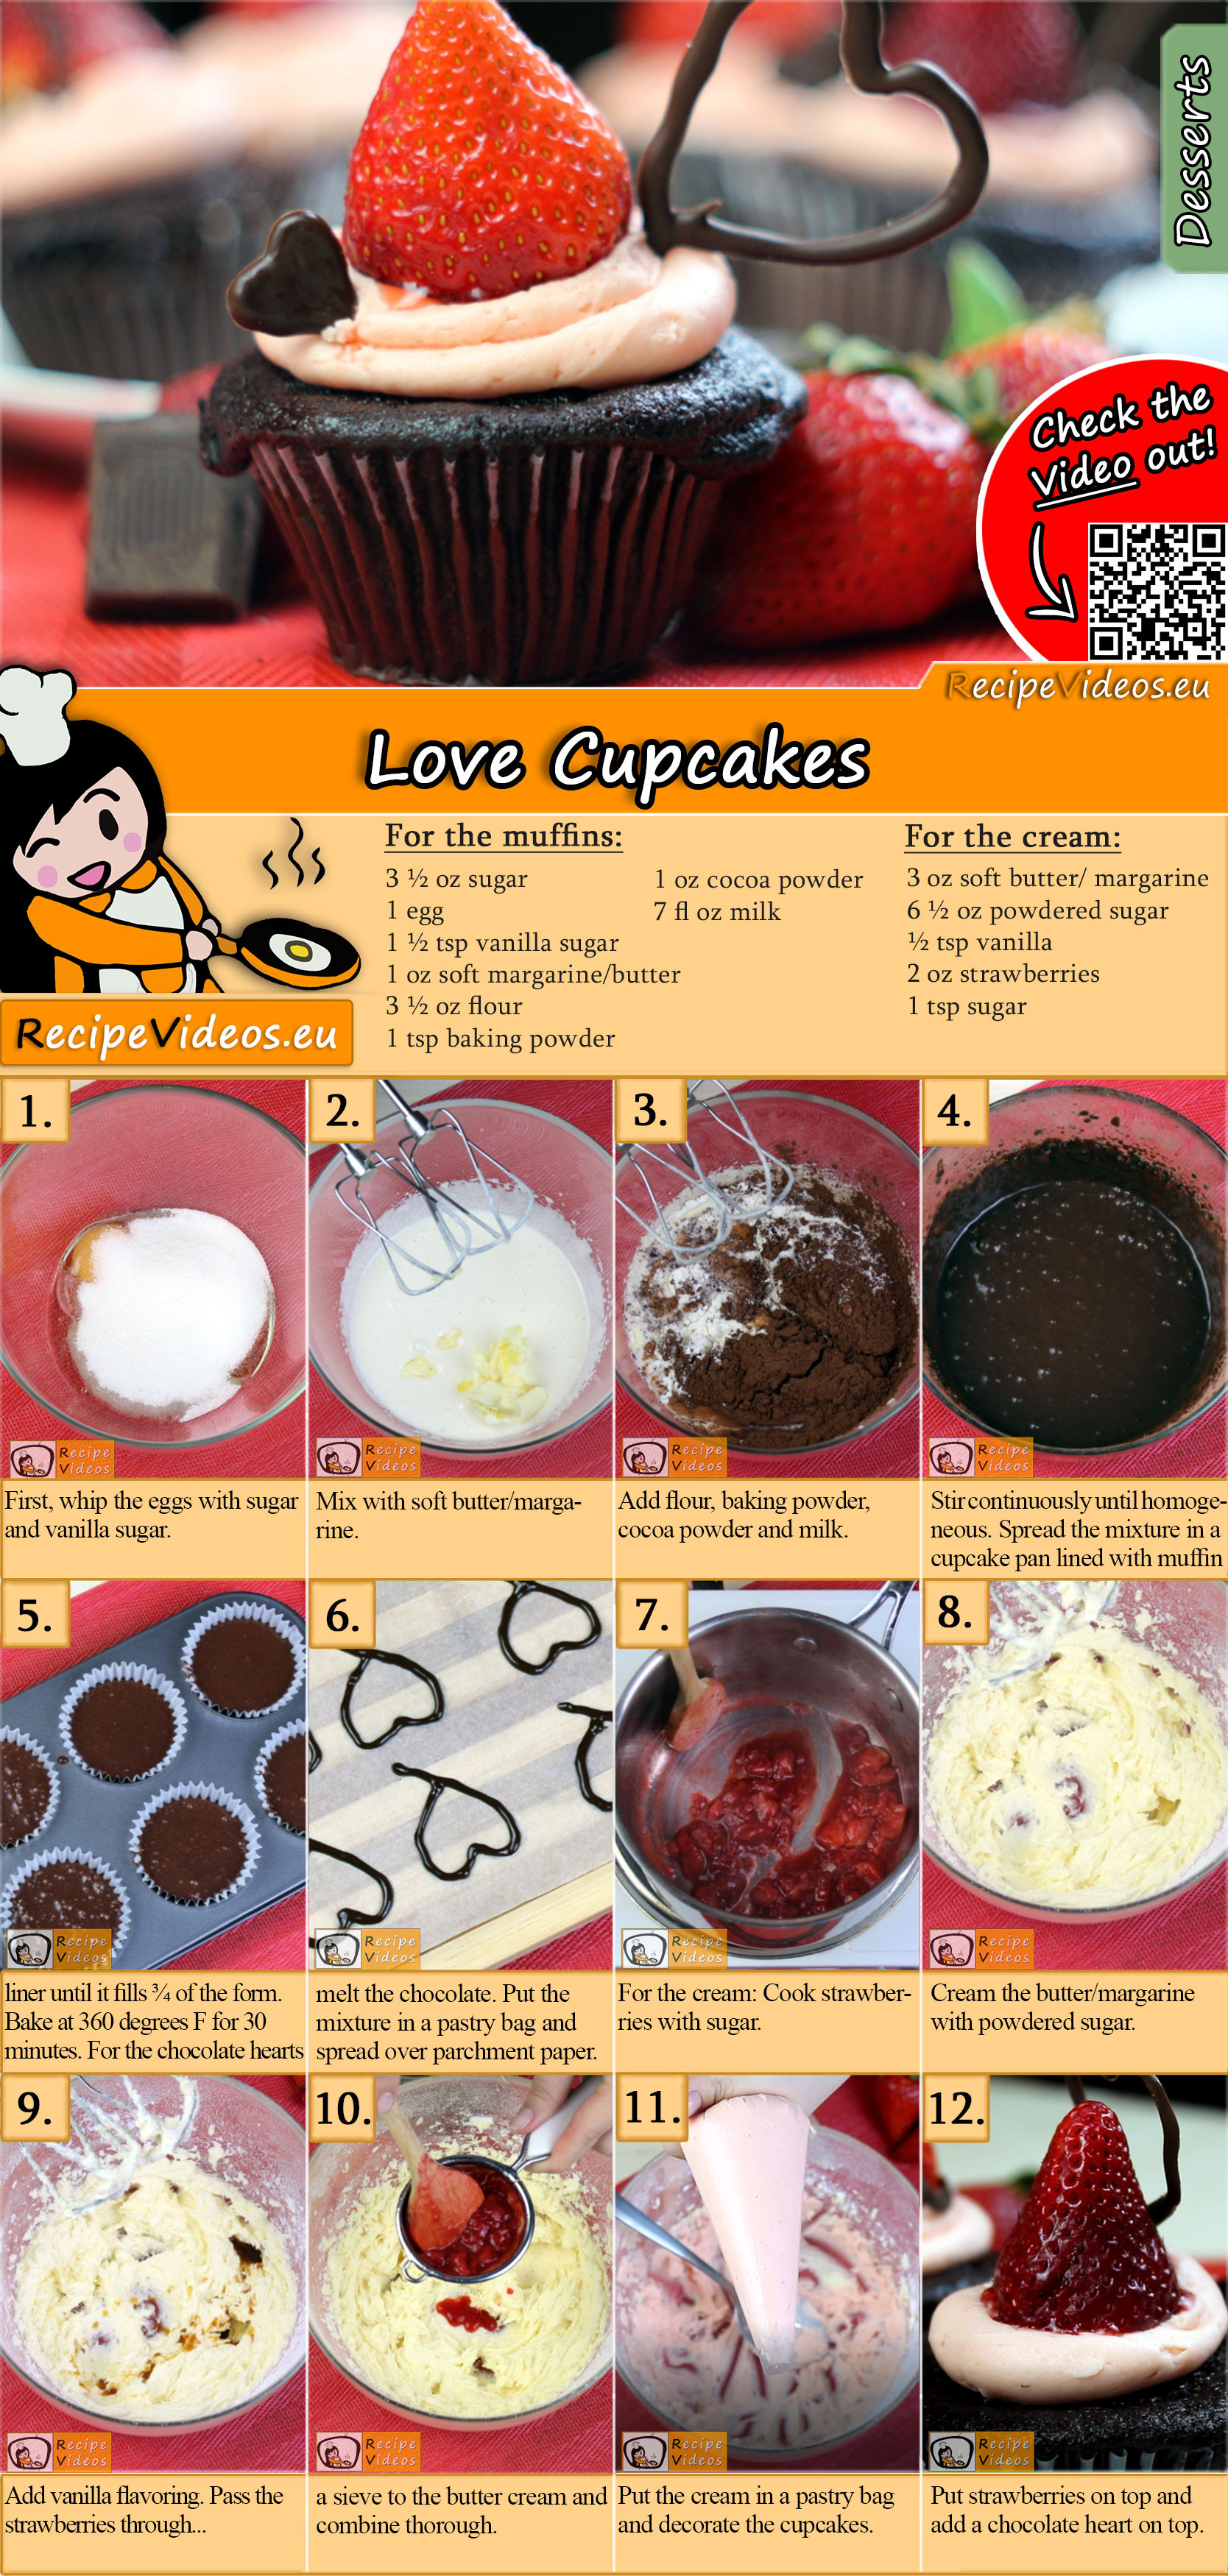 Love Cupcakes recipe with video